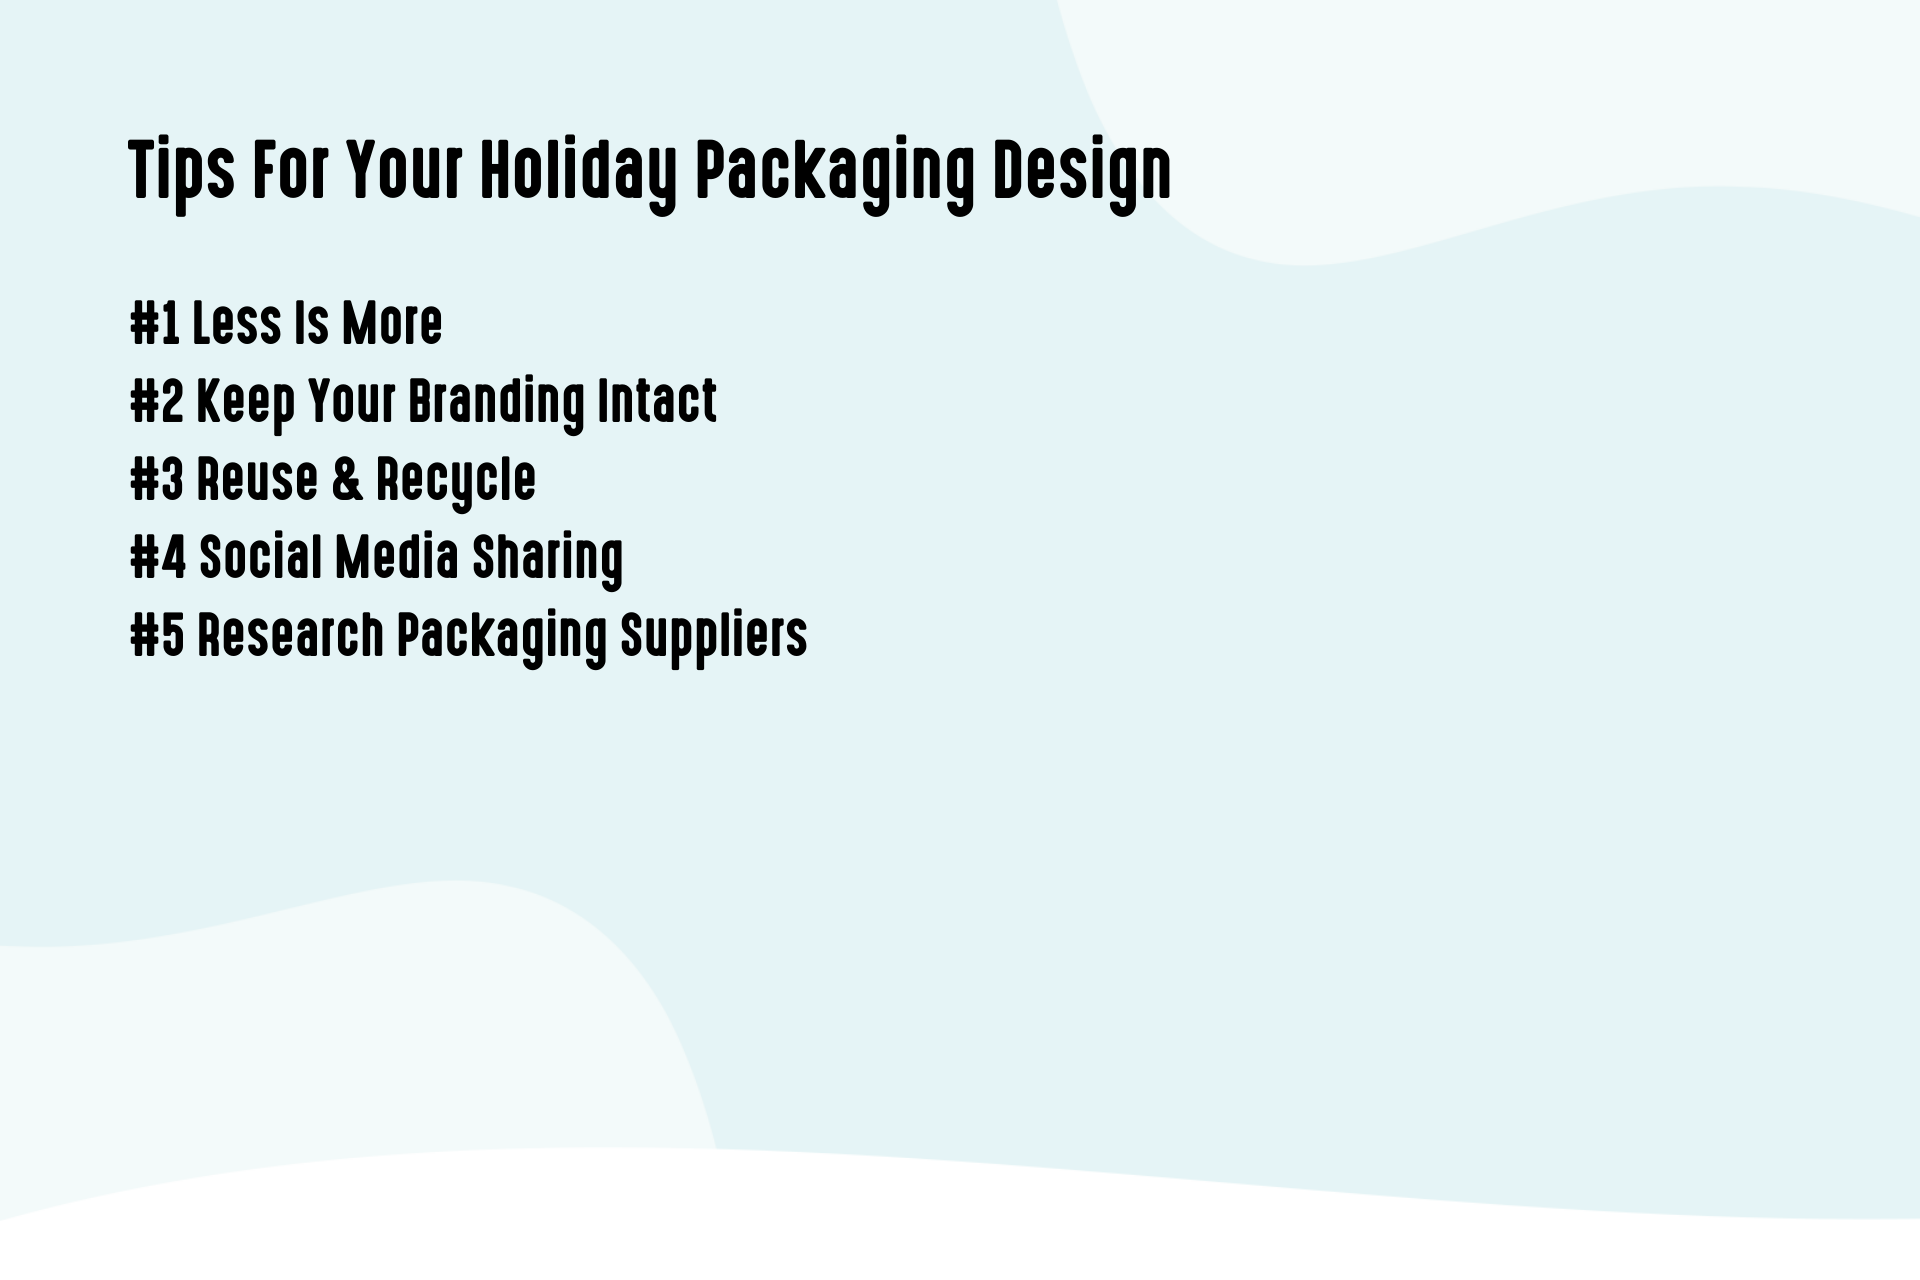 Tips For Your Holiday Packaging Design